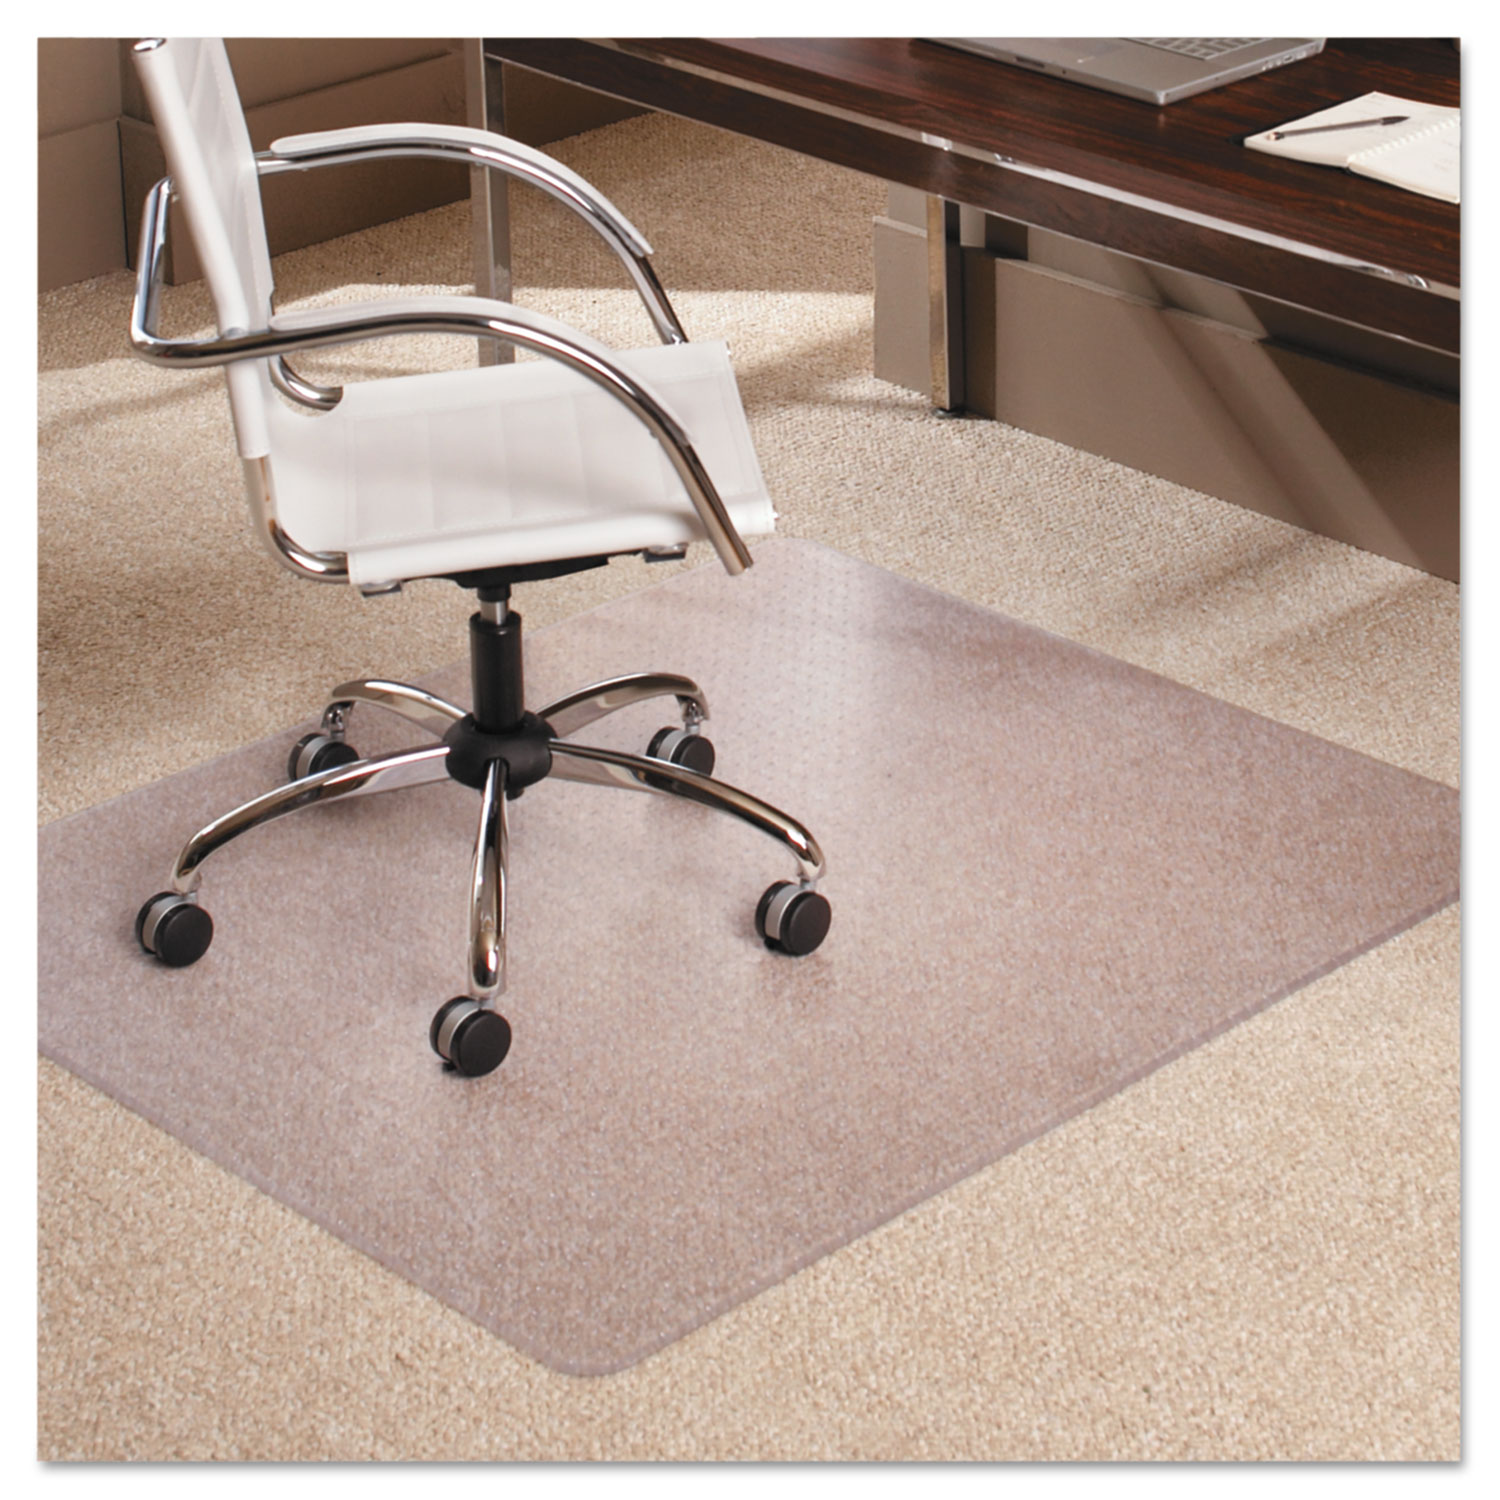 picture ideas chairs dimensions for shocking mat computer chair throughout x hardwood floor rug mats office